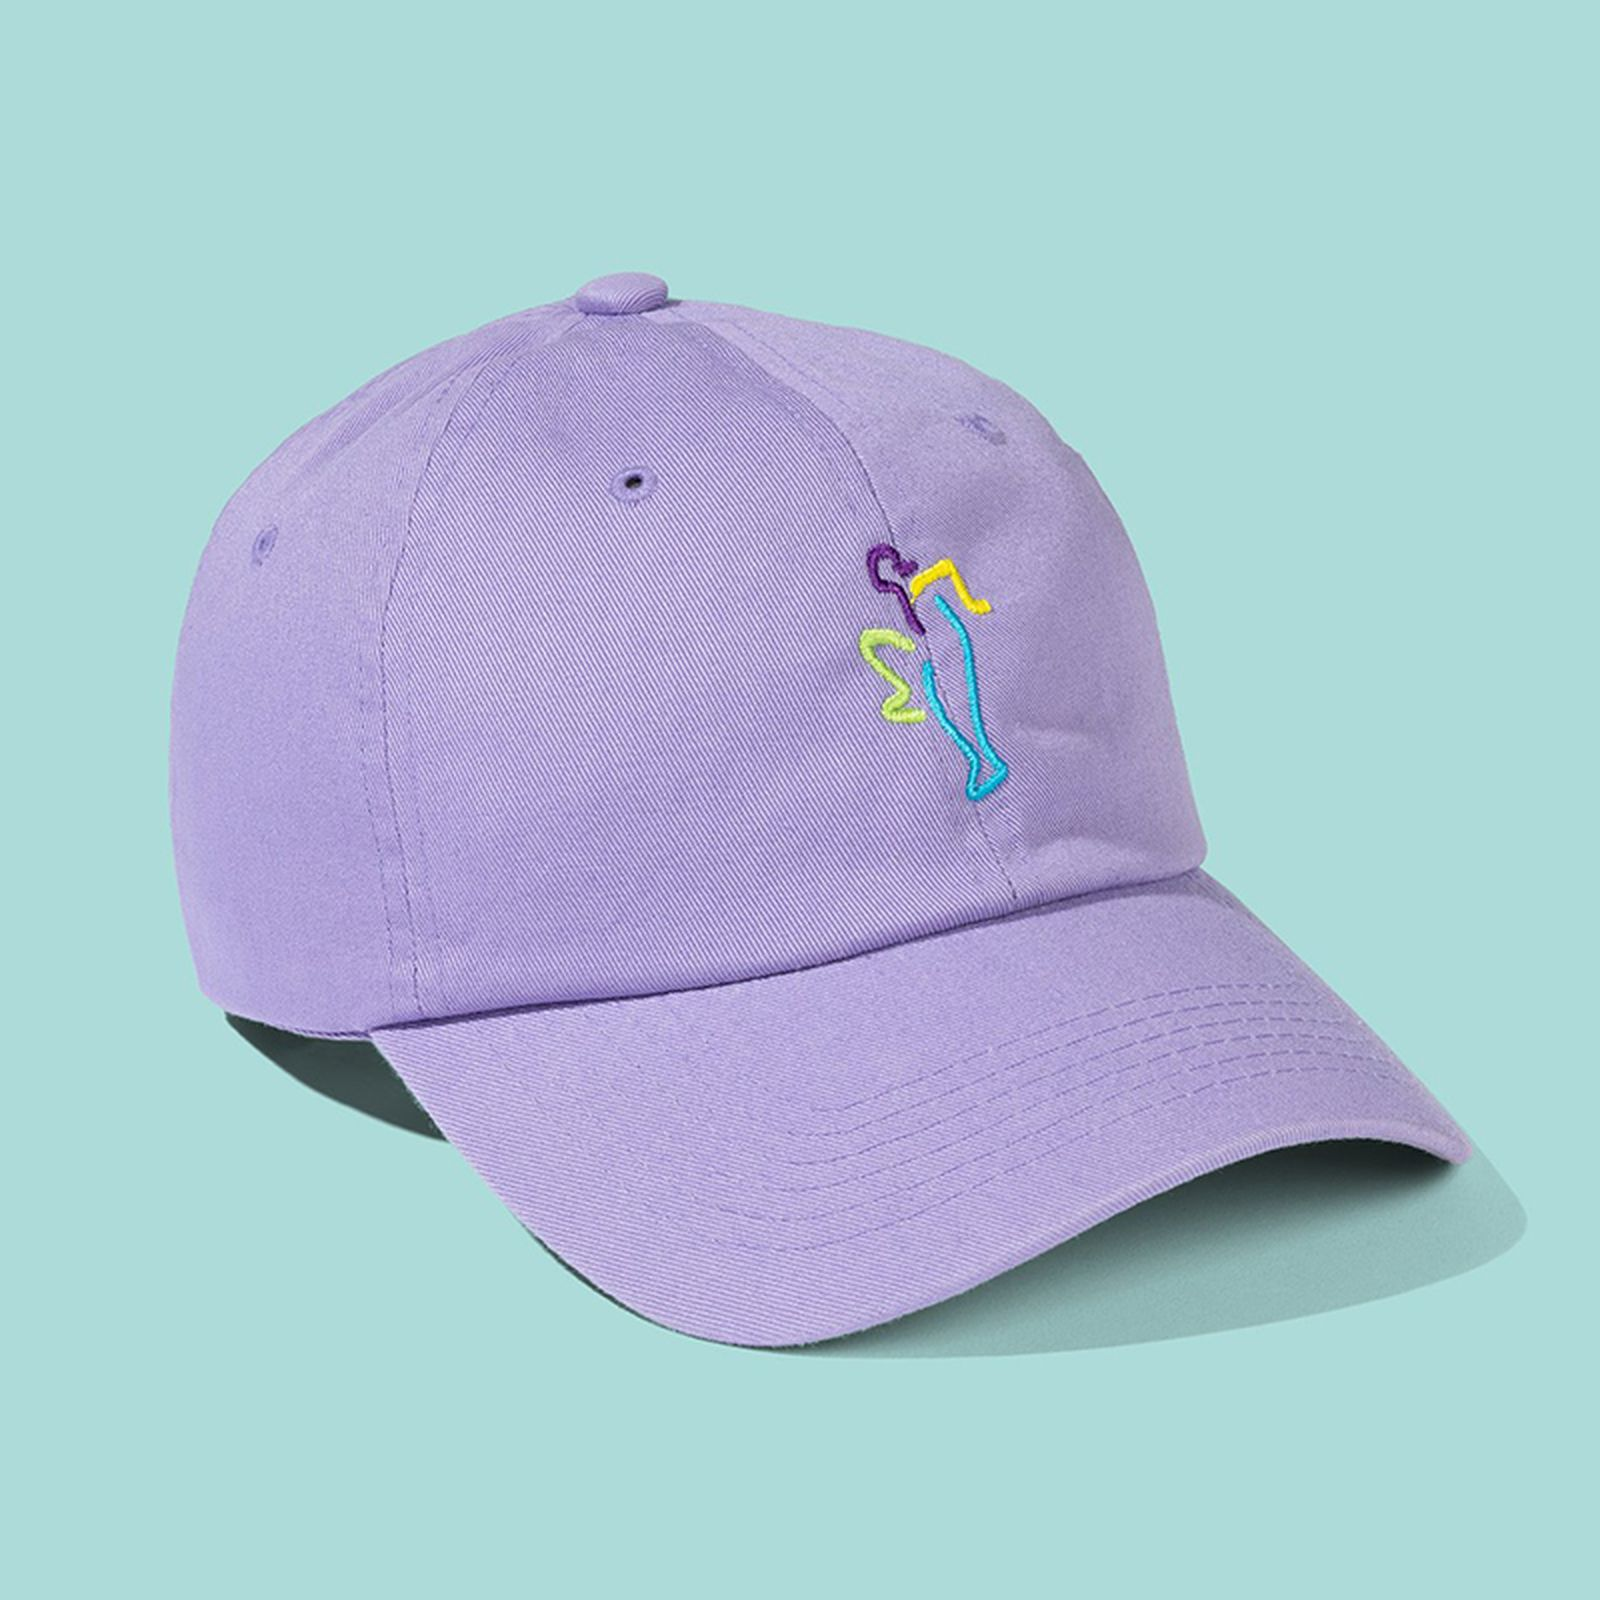 will smith fresh prince of bel air merch the fresh prince of bel-air